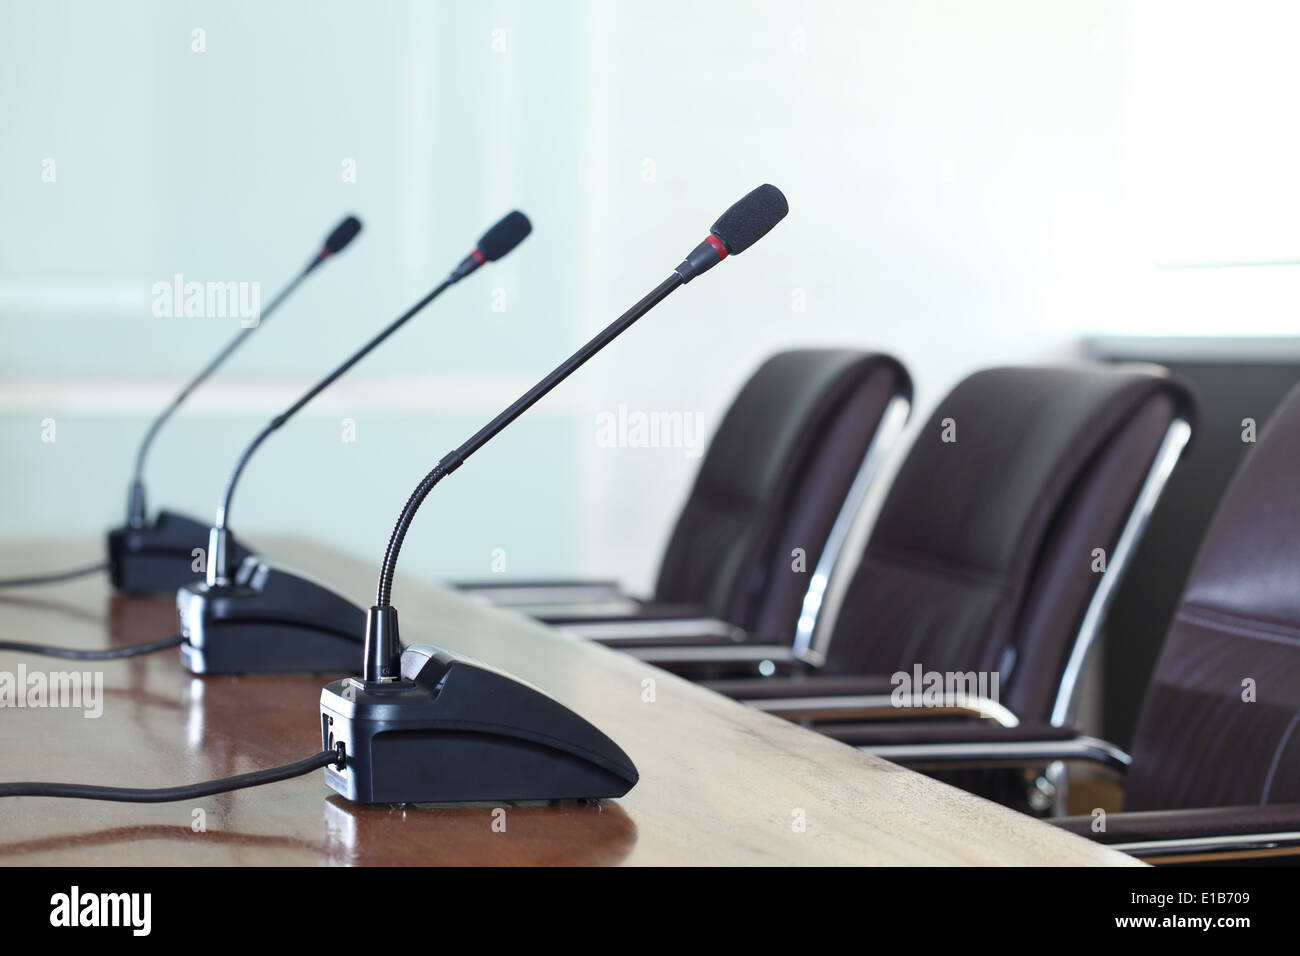 Conference microphones in a meeting room - Stock Image